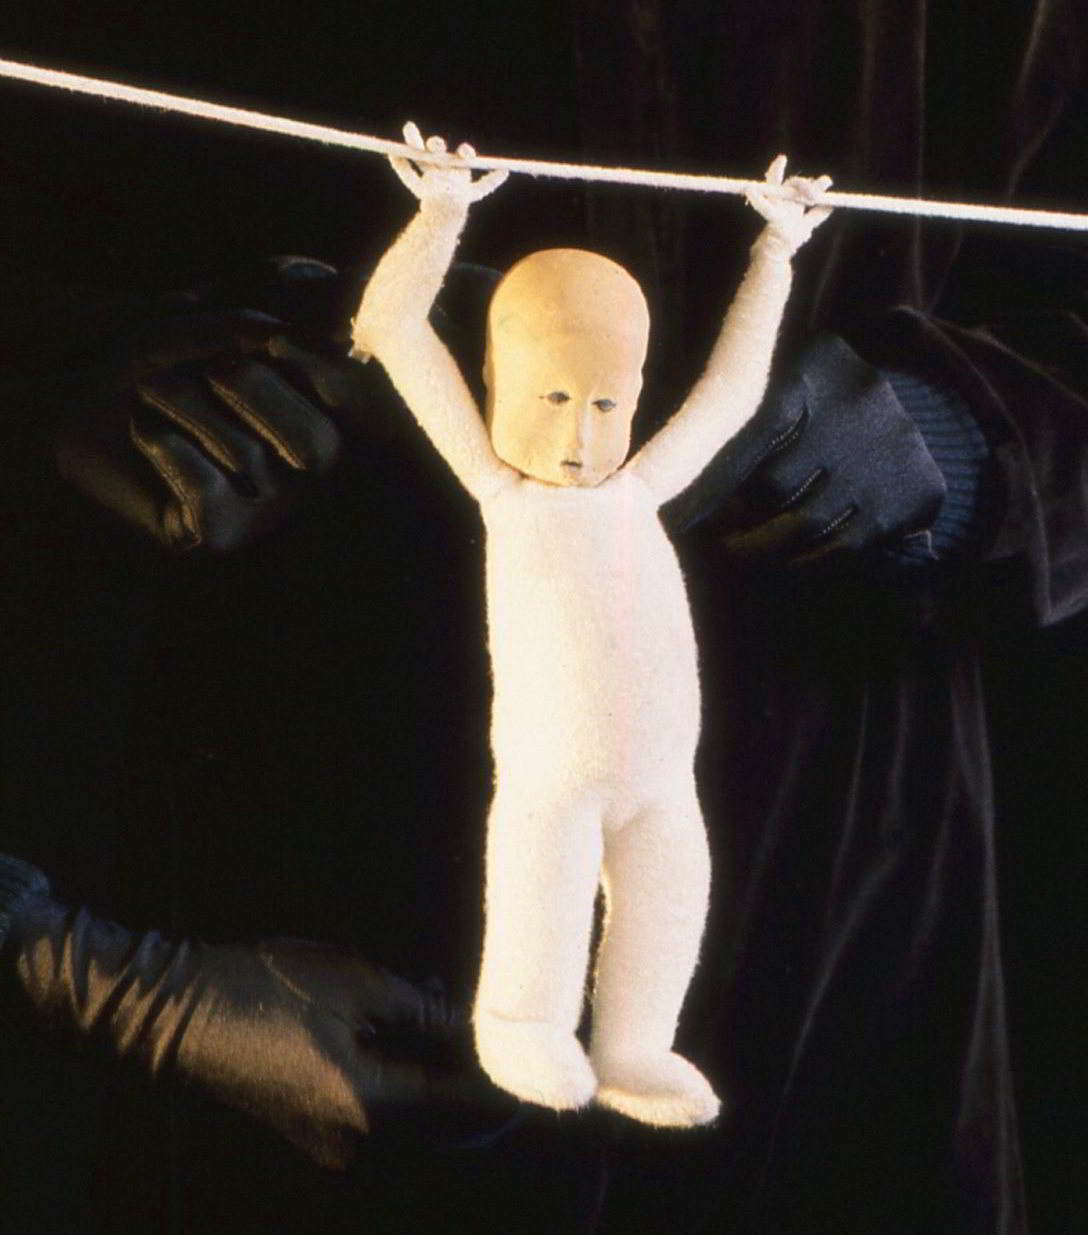 Handspan Theatre Moments a puppet figure hanging by arms swinging on a wire